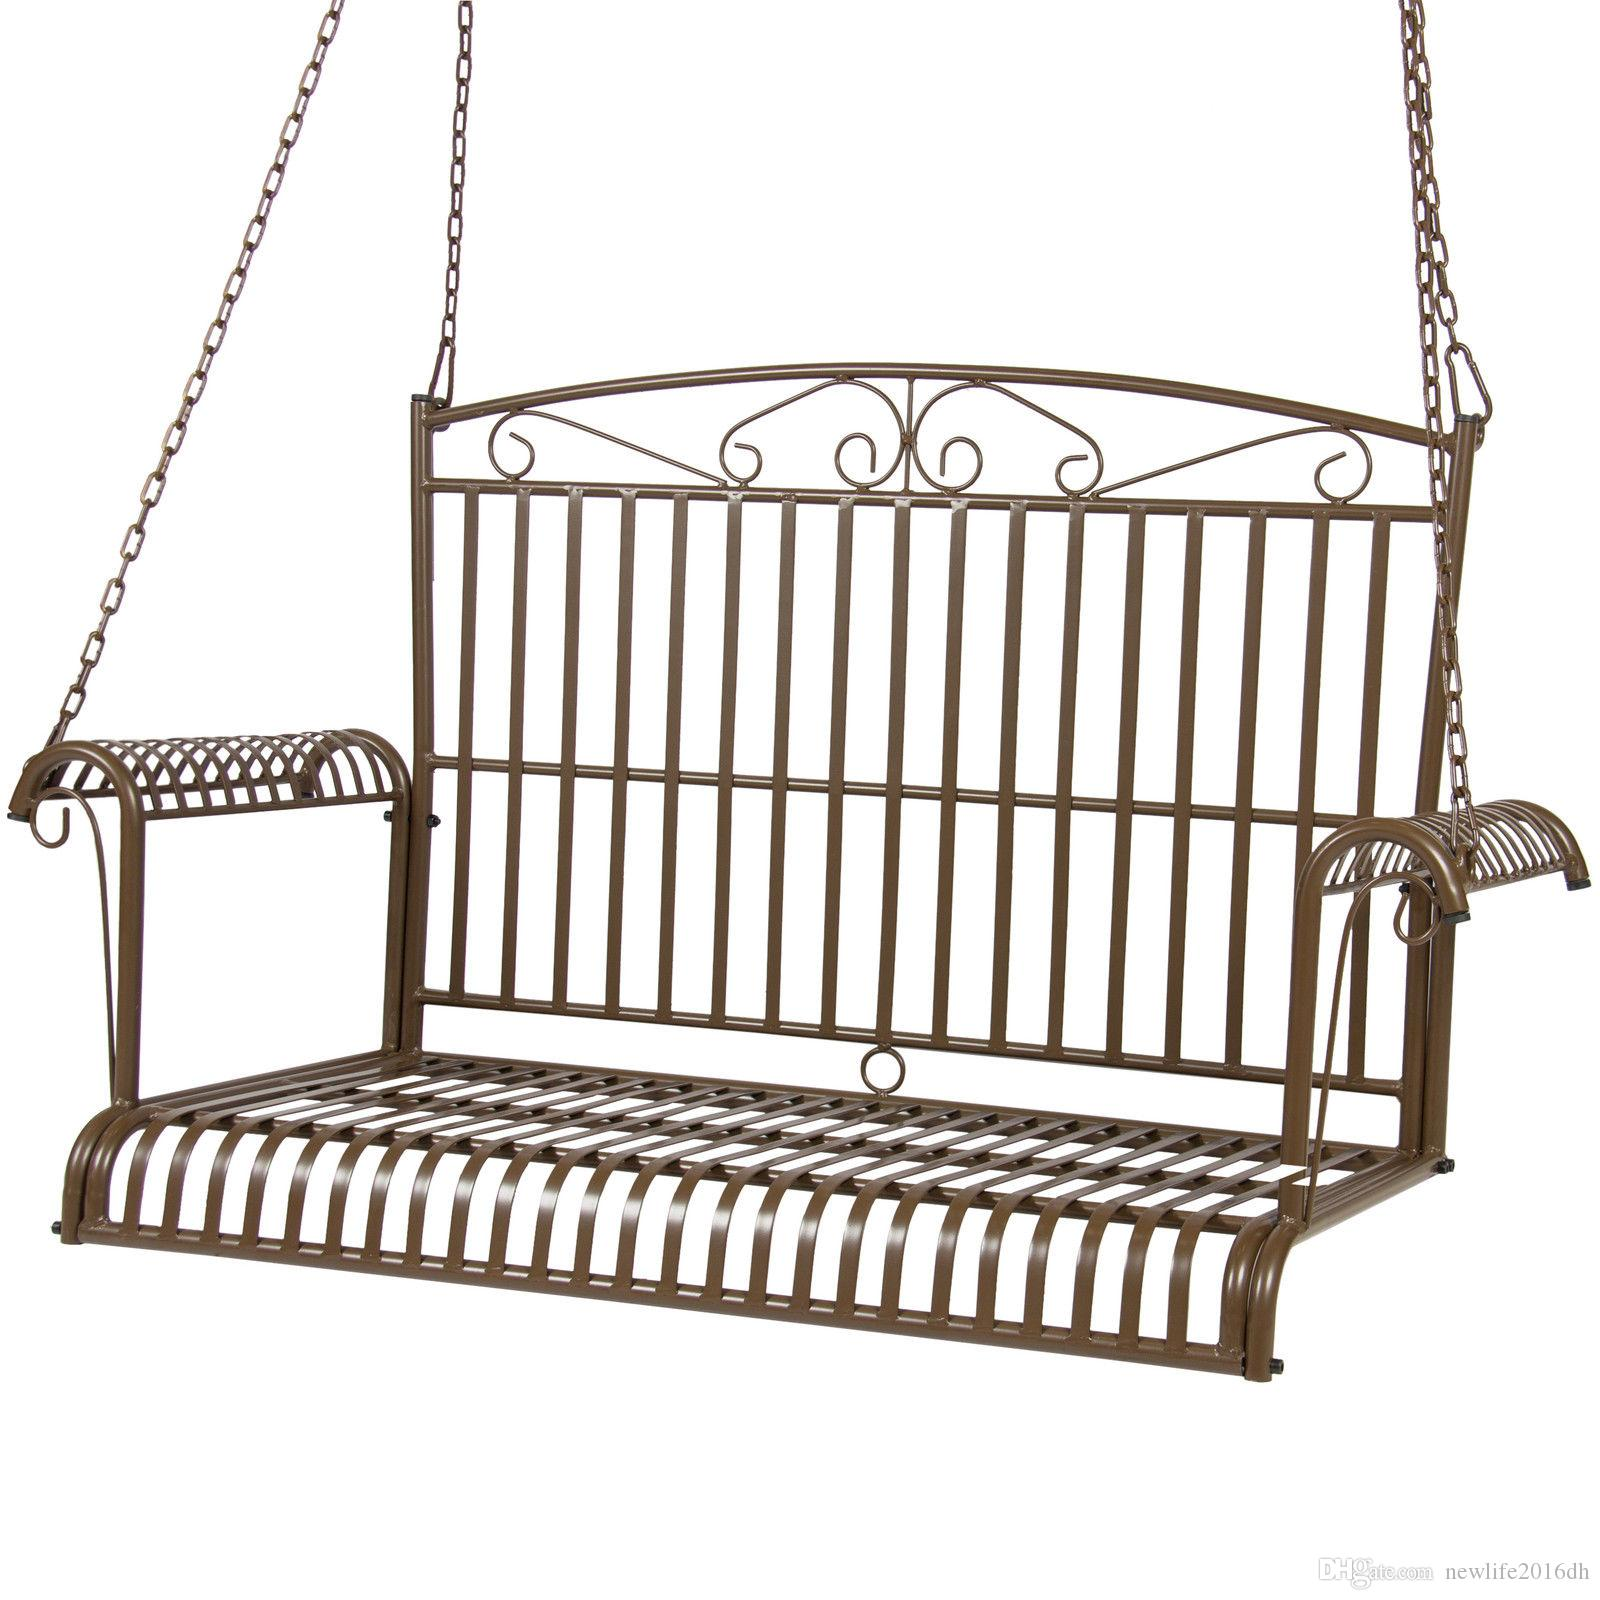 2018 Bcp Iron Patio Hanging Porch Swing Chair Bench Seat Outdoor Furniture  From Newlife2016dh, $80.41   Dhgate.Com